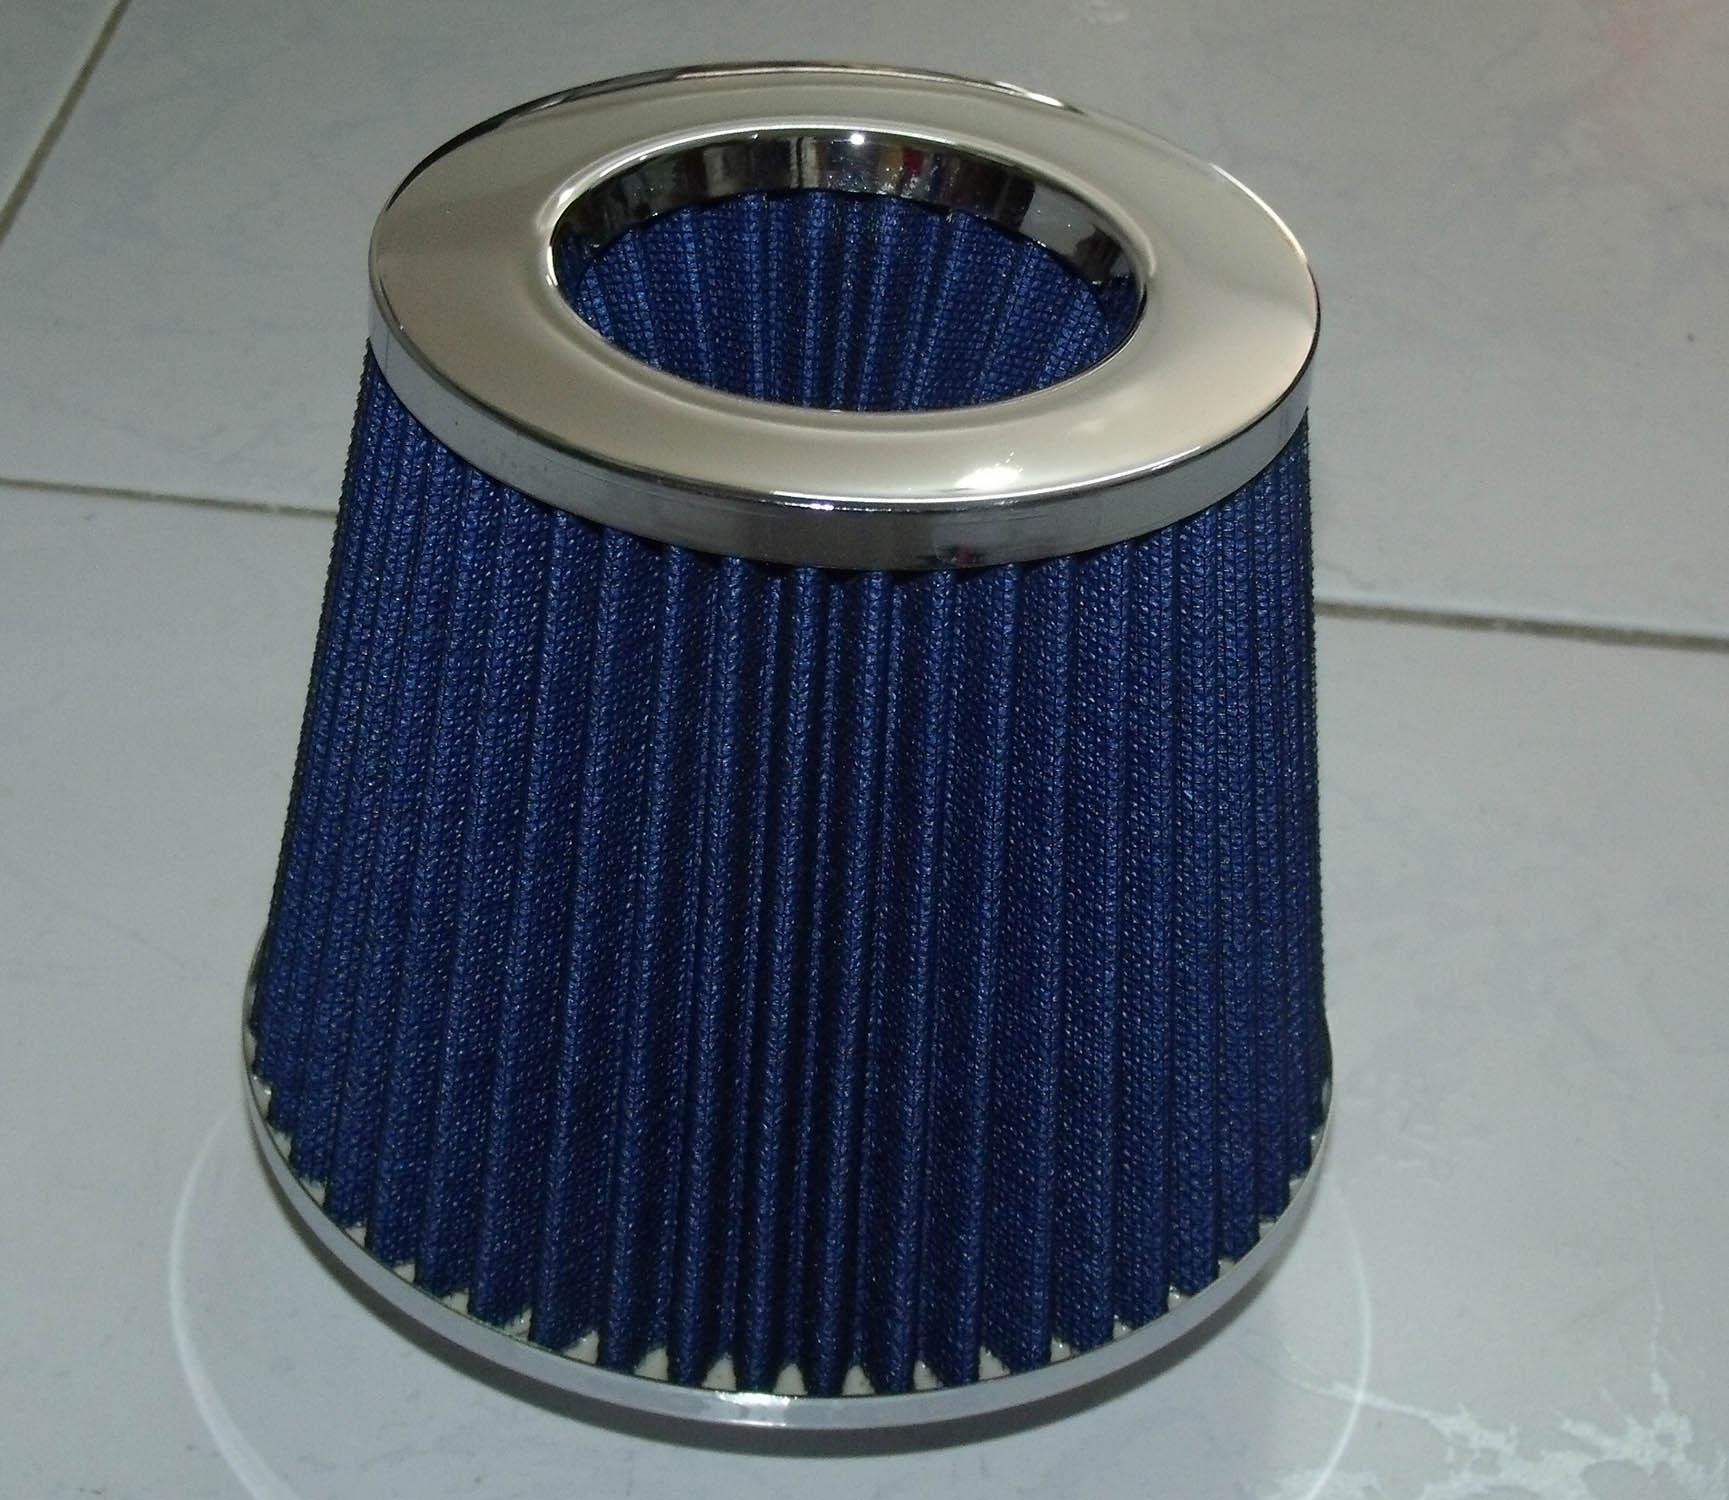 2007 toyota camry engine air filter replacement